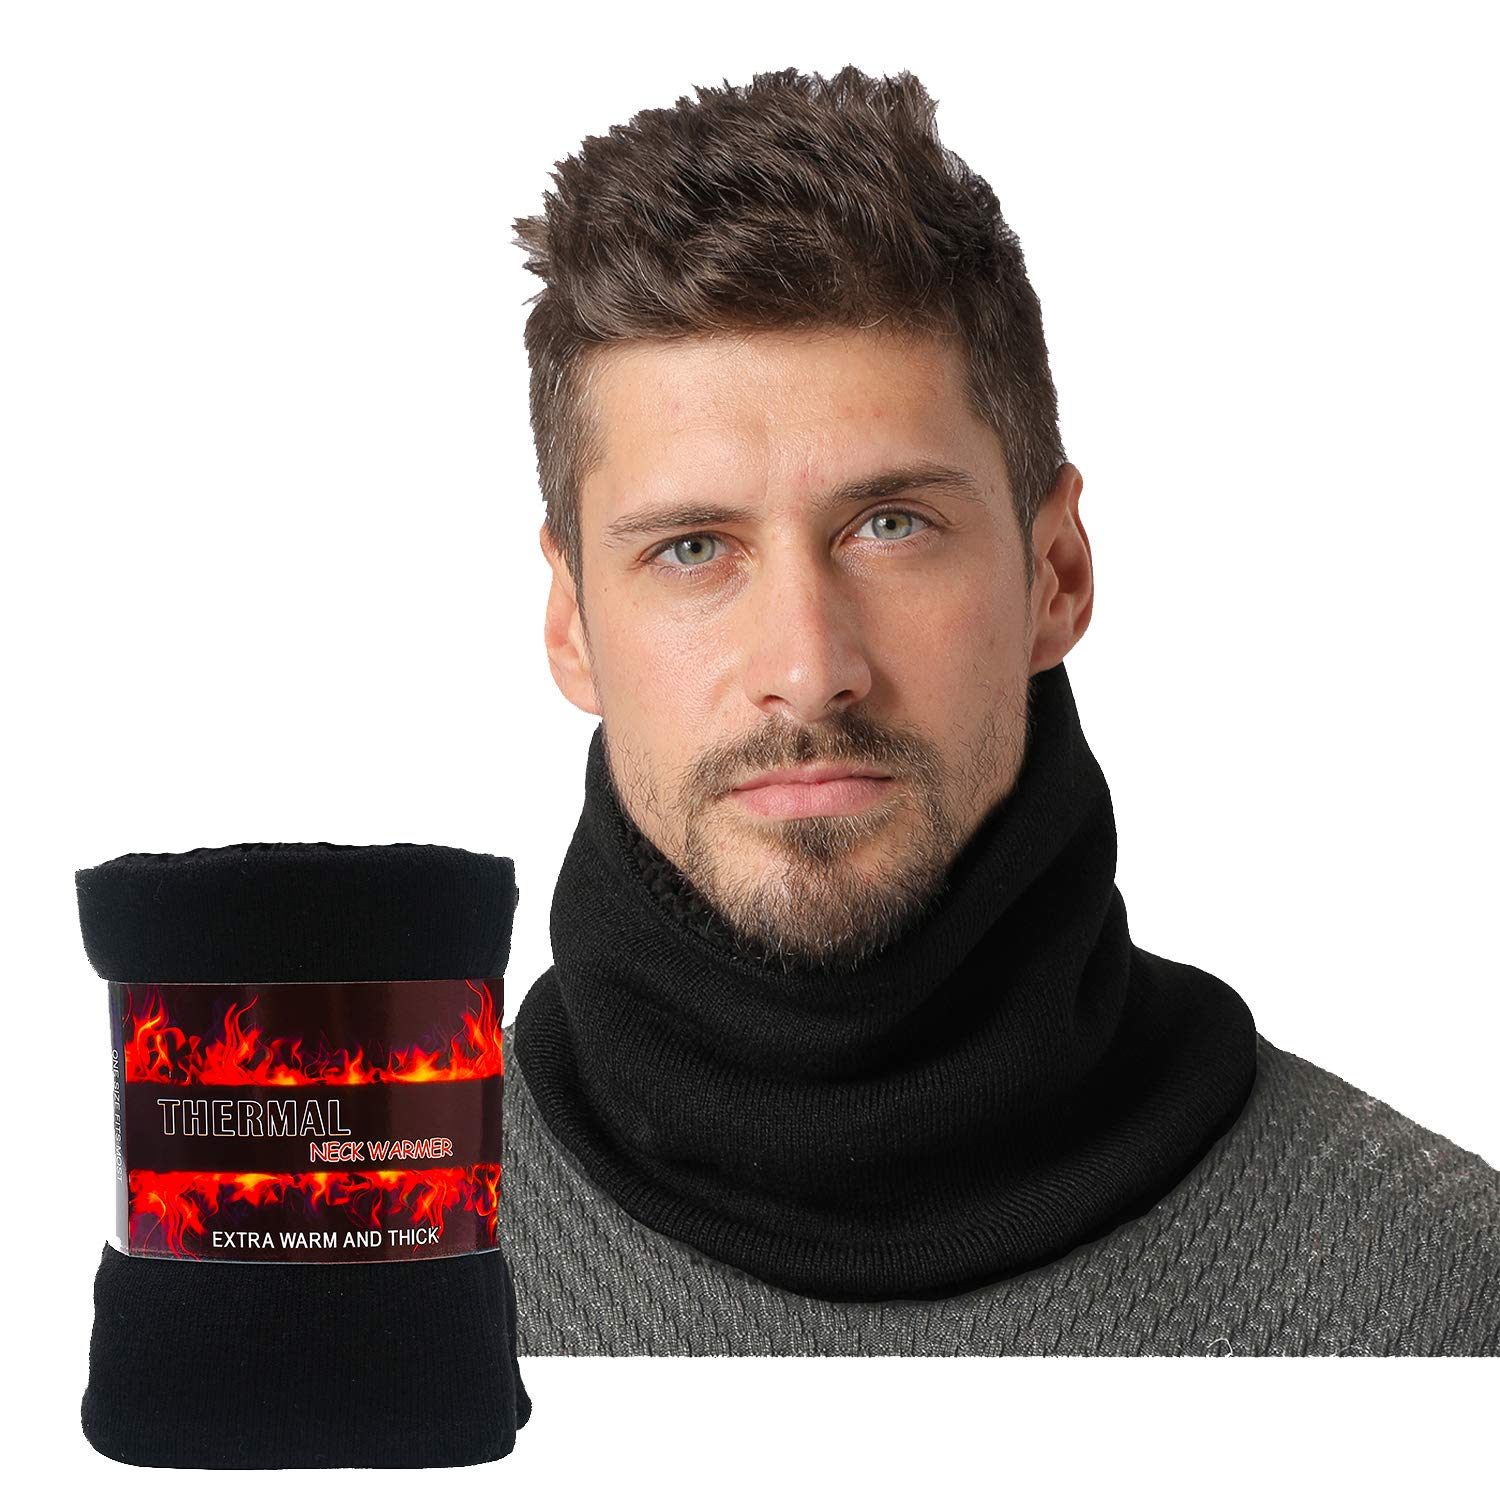 d7a7593be NovForth Fleece Neck Warmer Thick Heat Trapping Thermal Winter Neck Gaiters  for Winter Ski Snowboard product